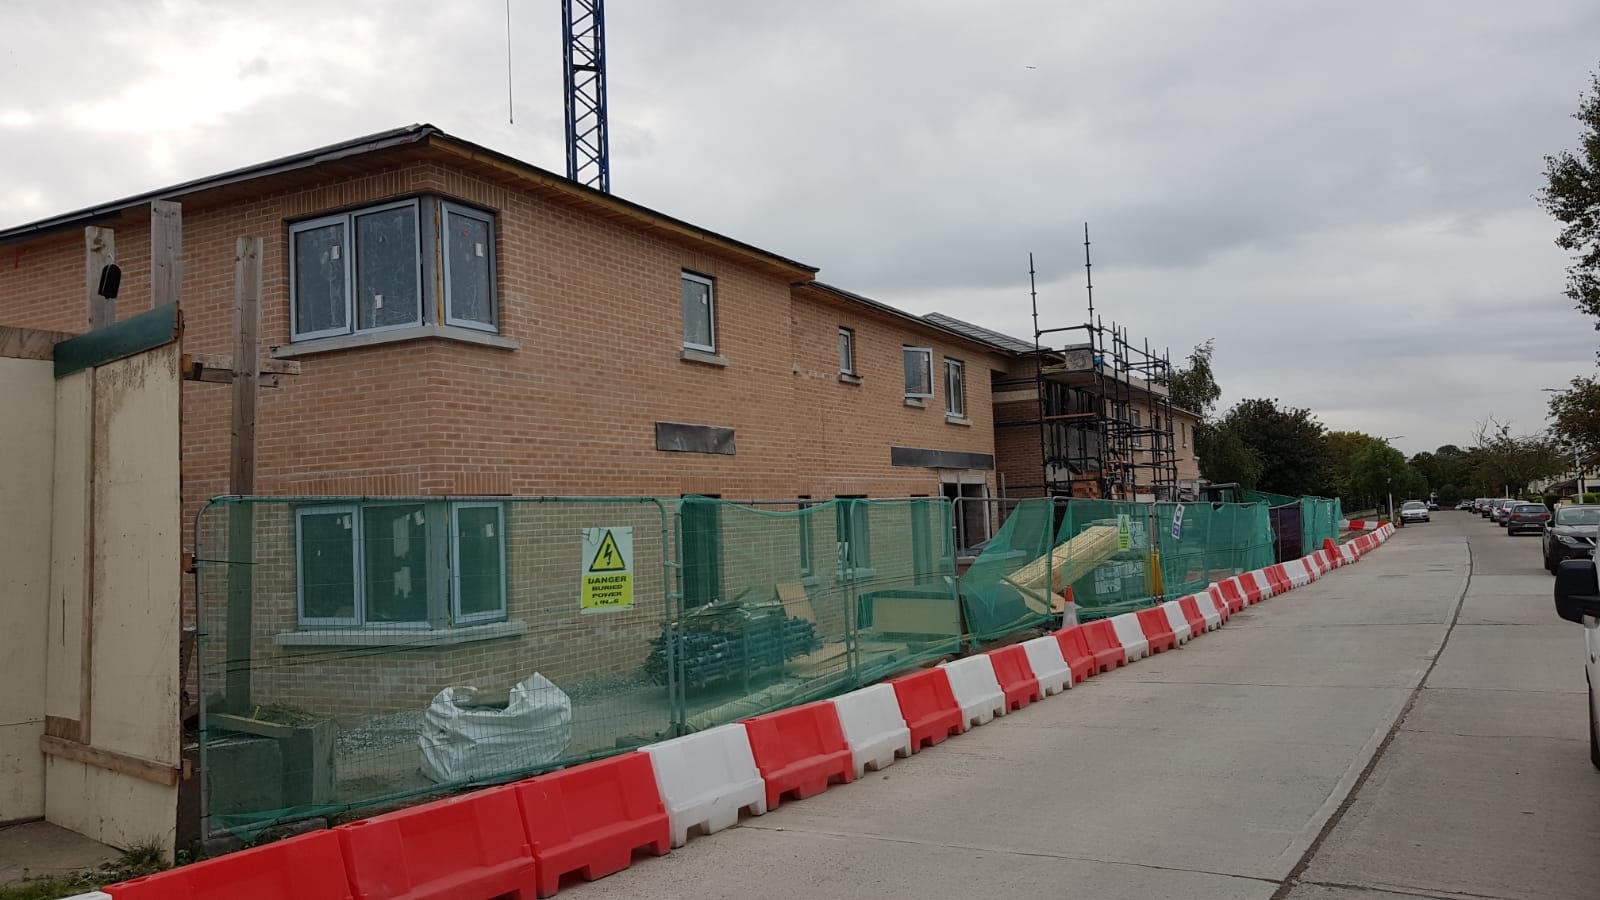 New homes on Broadford Rise will provide purpose-built housing for older residents - many of whom will surrender larger homes which can then be used to house younger, larger families.